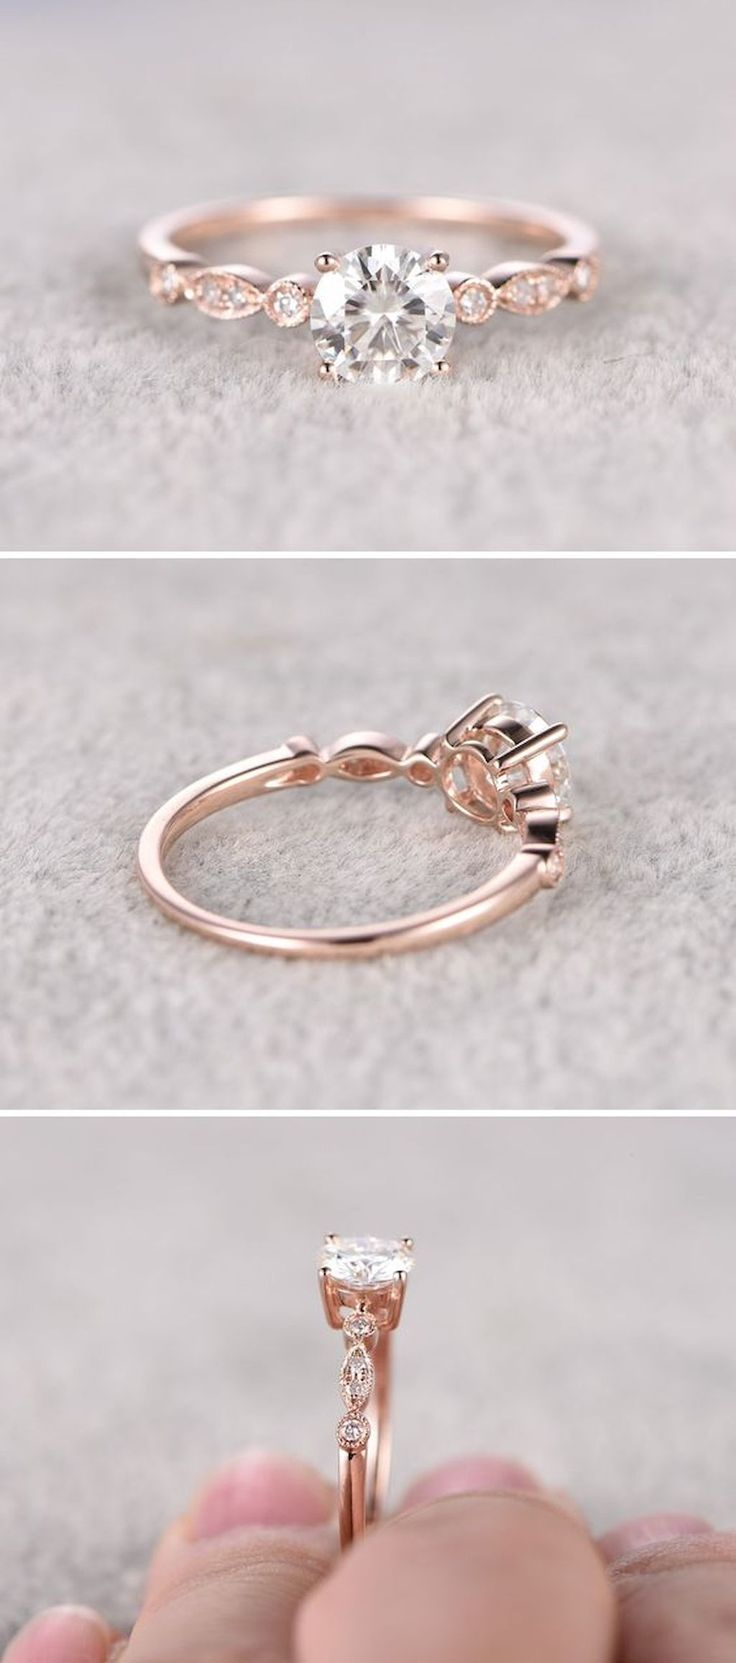 Gorgeous 83 Simple Engagement Rings You'll Want To Wear Forever https://bitecloth.com/2017/06/23/83-simple-engagement-rings-youll-want-wear-forever/